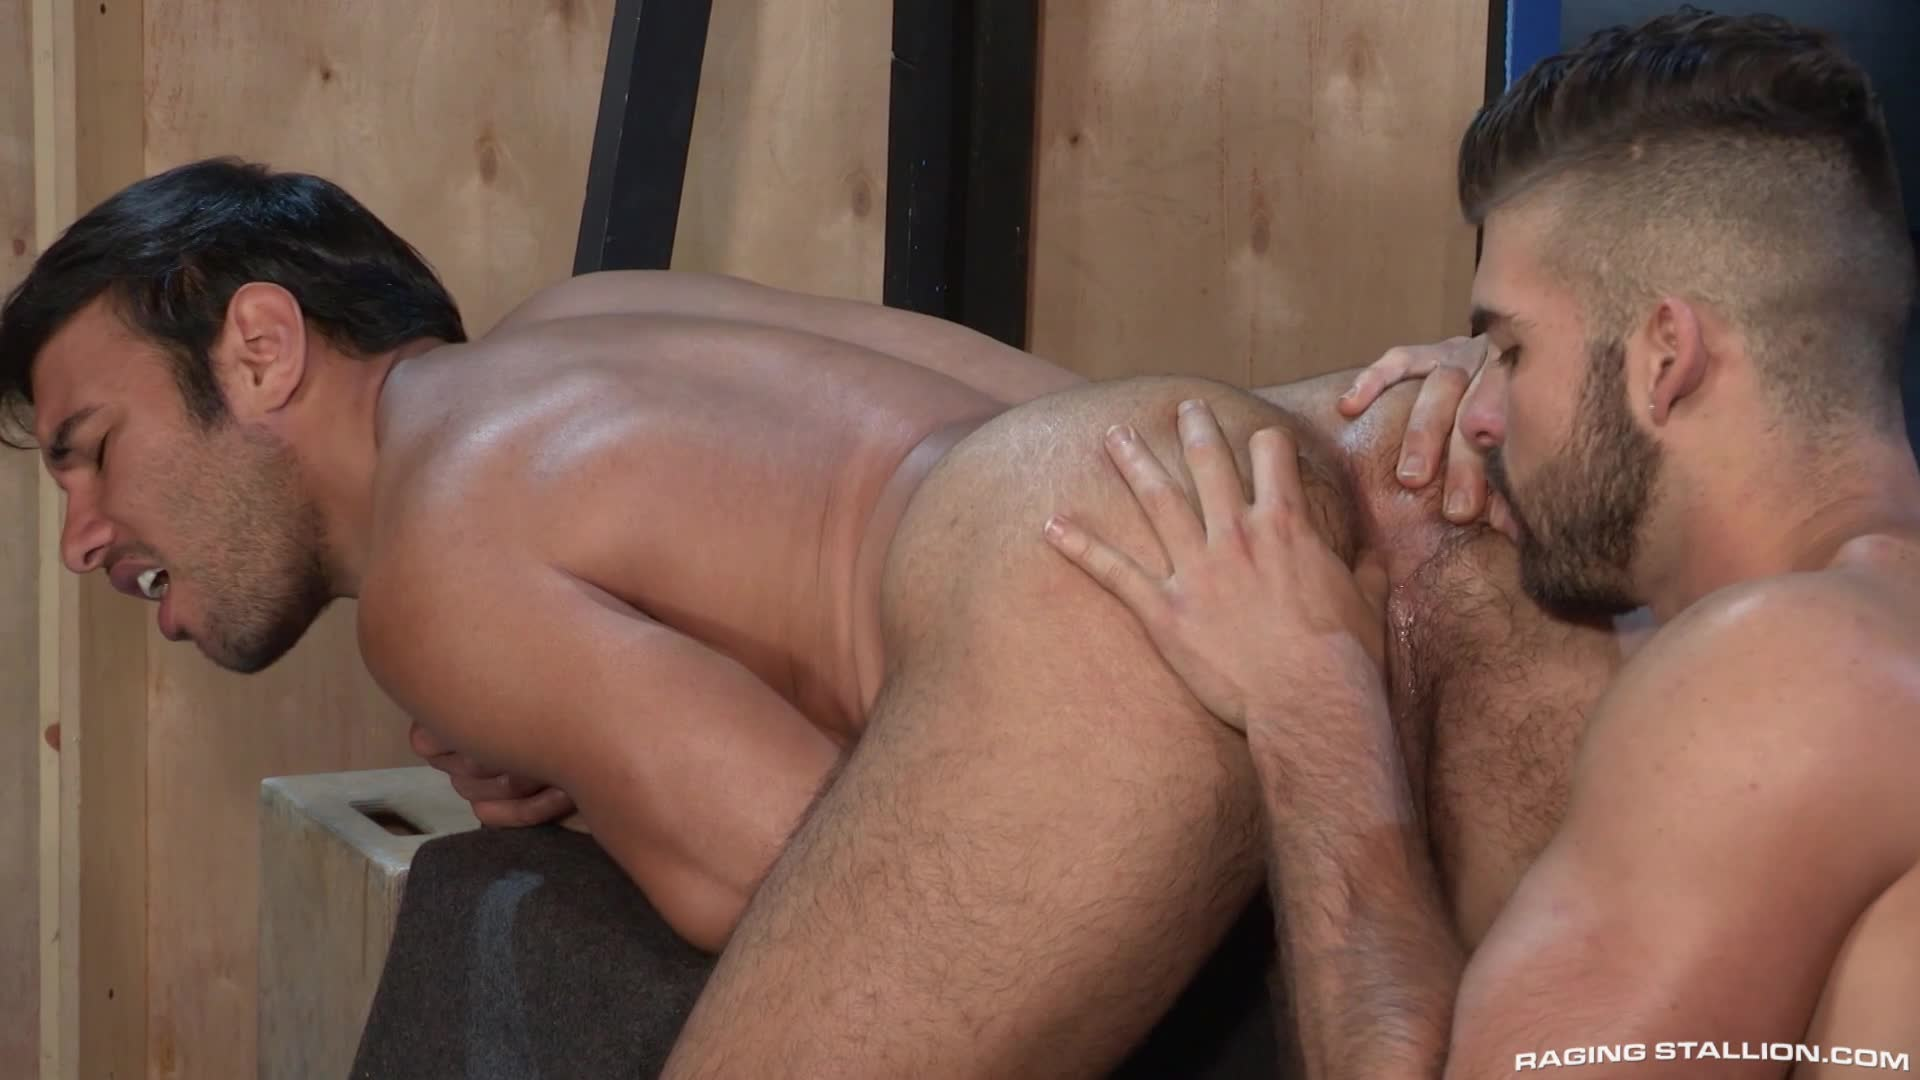 two gay scalies give you a wet sloppy blowjob